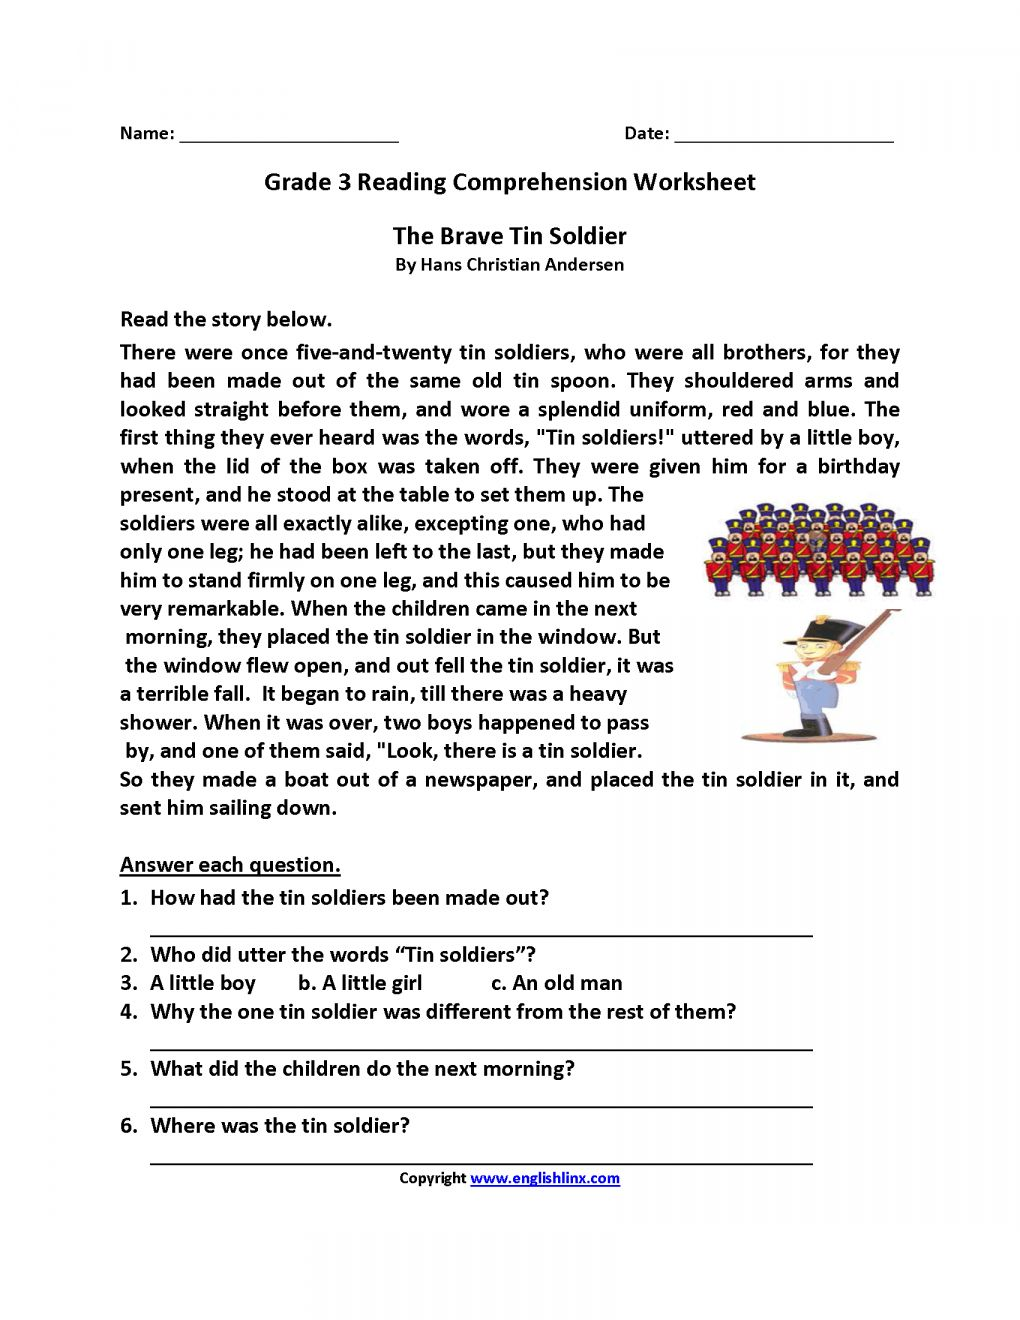 Reading Comprehension Worksheets For Grade 3 Pdf Free